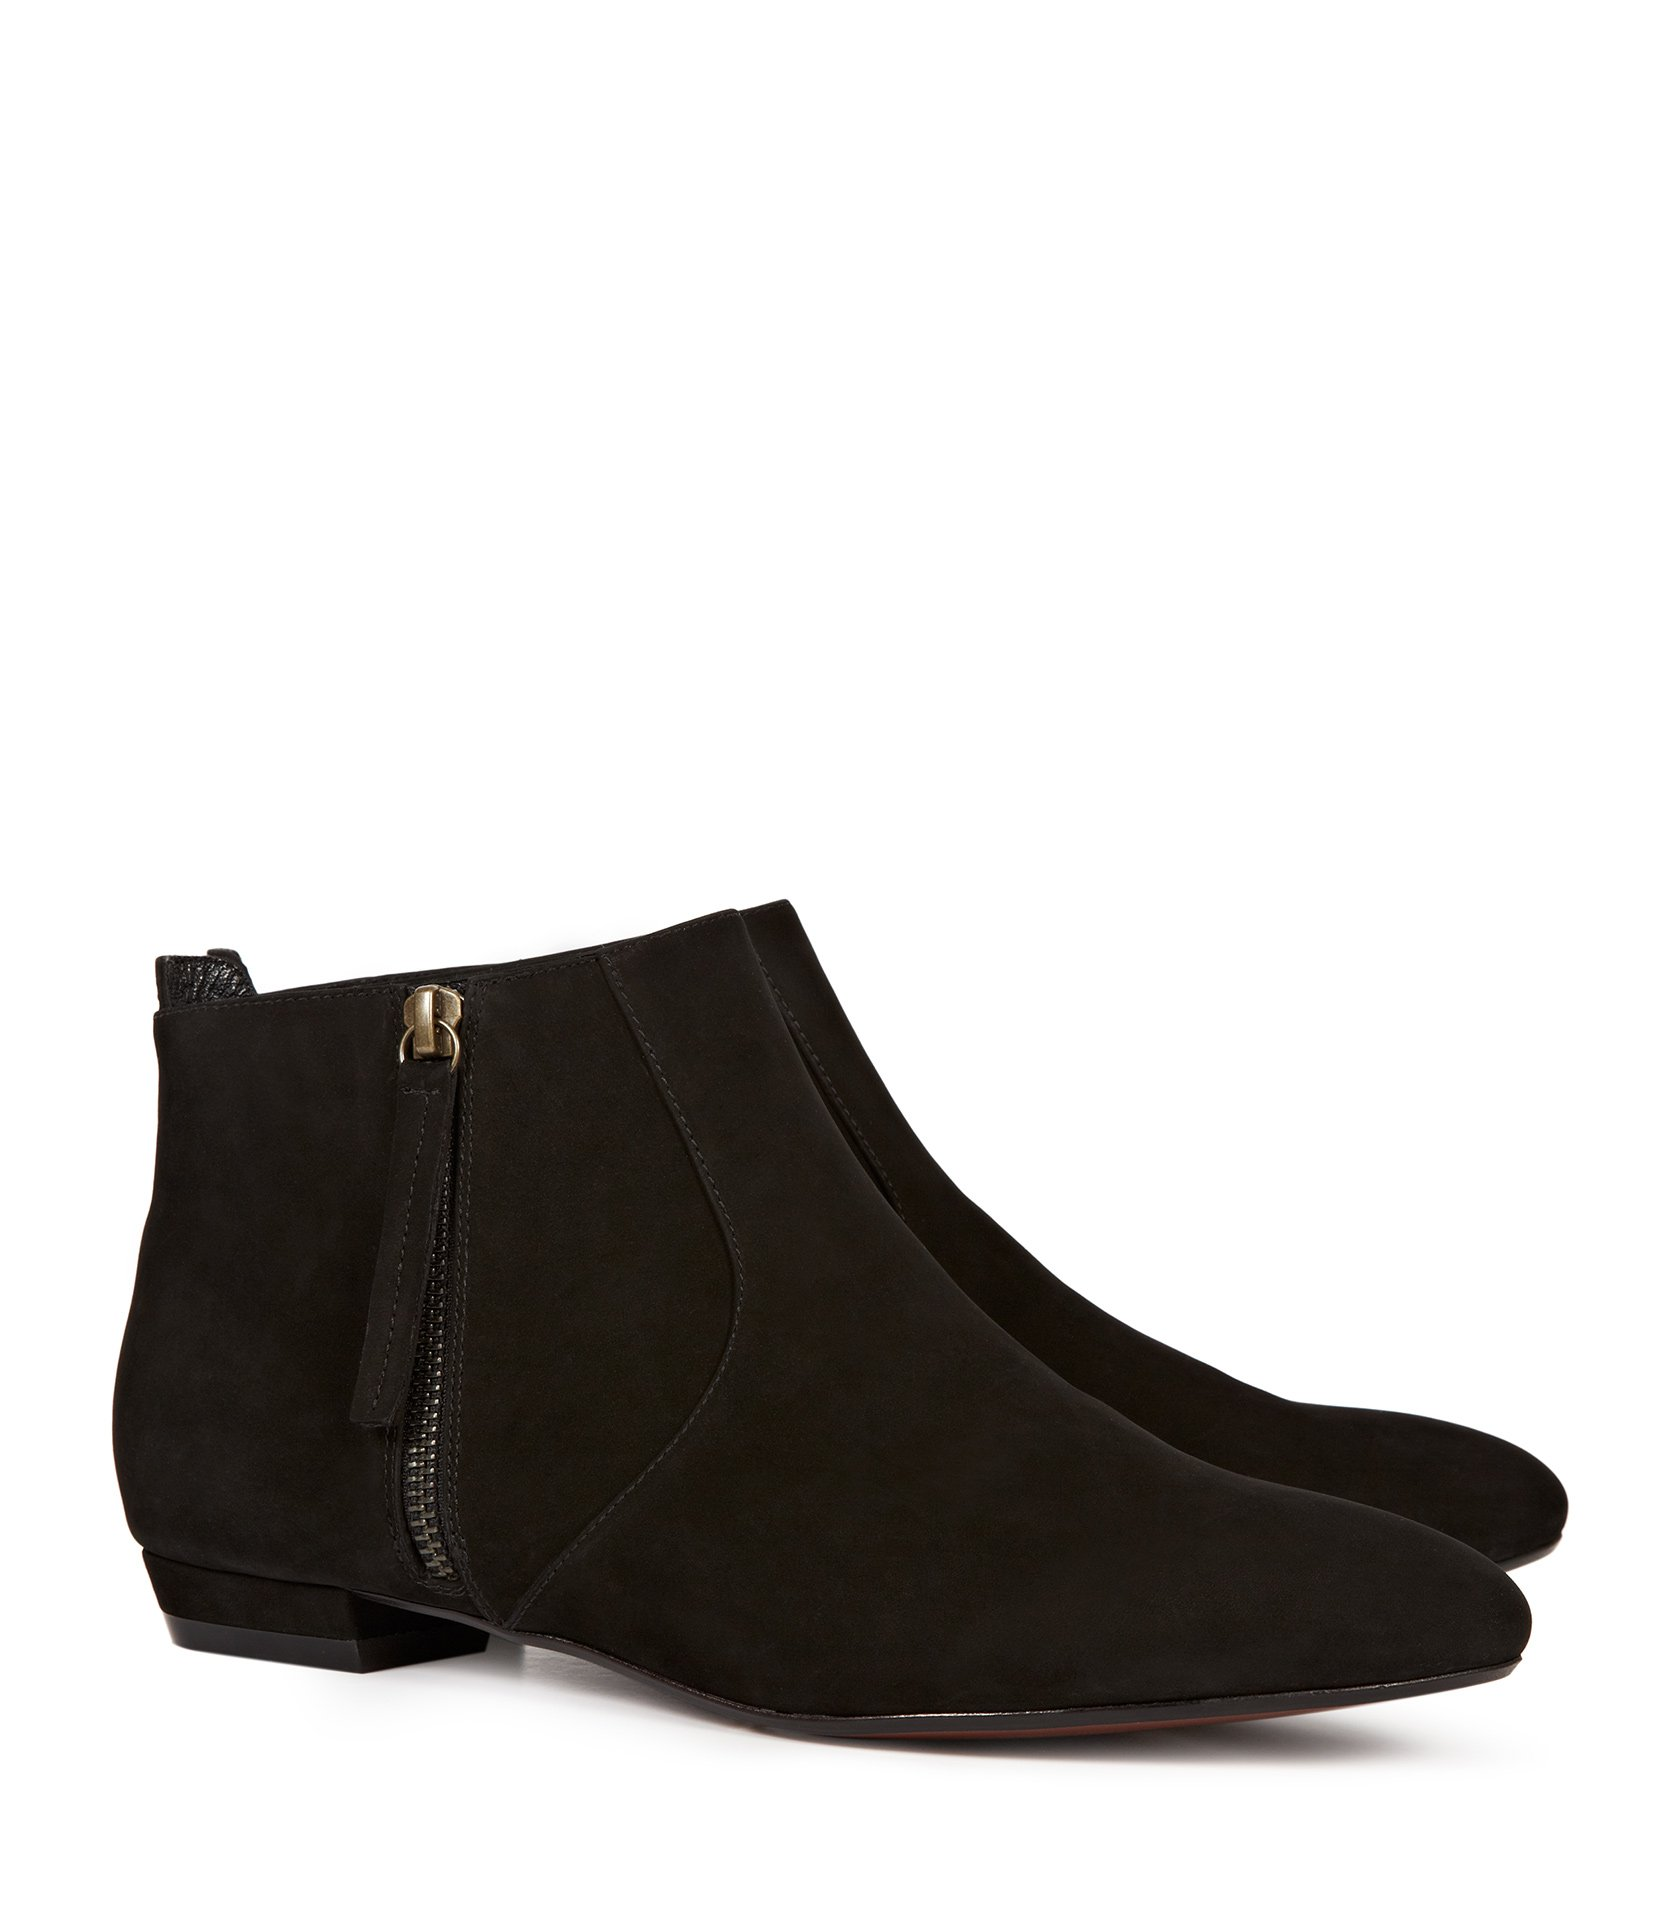 Reiss Lara Zip Up Denim Flat Ankle Boot in Black | Lyst